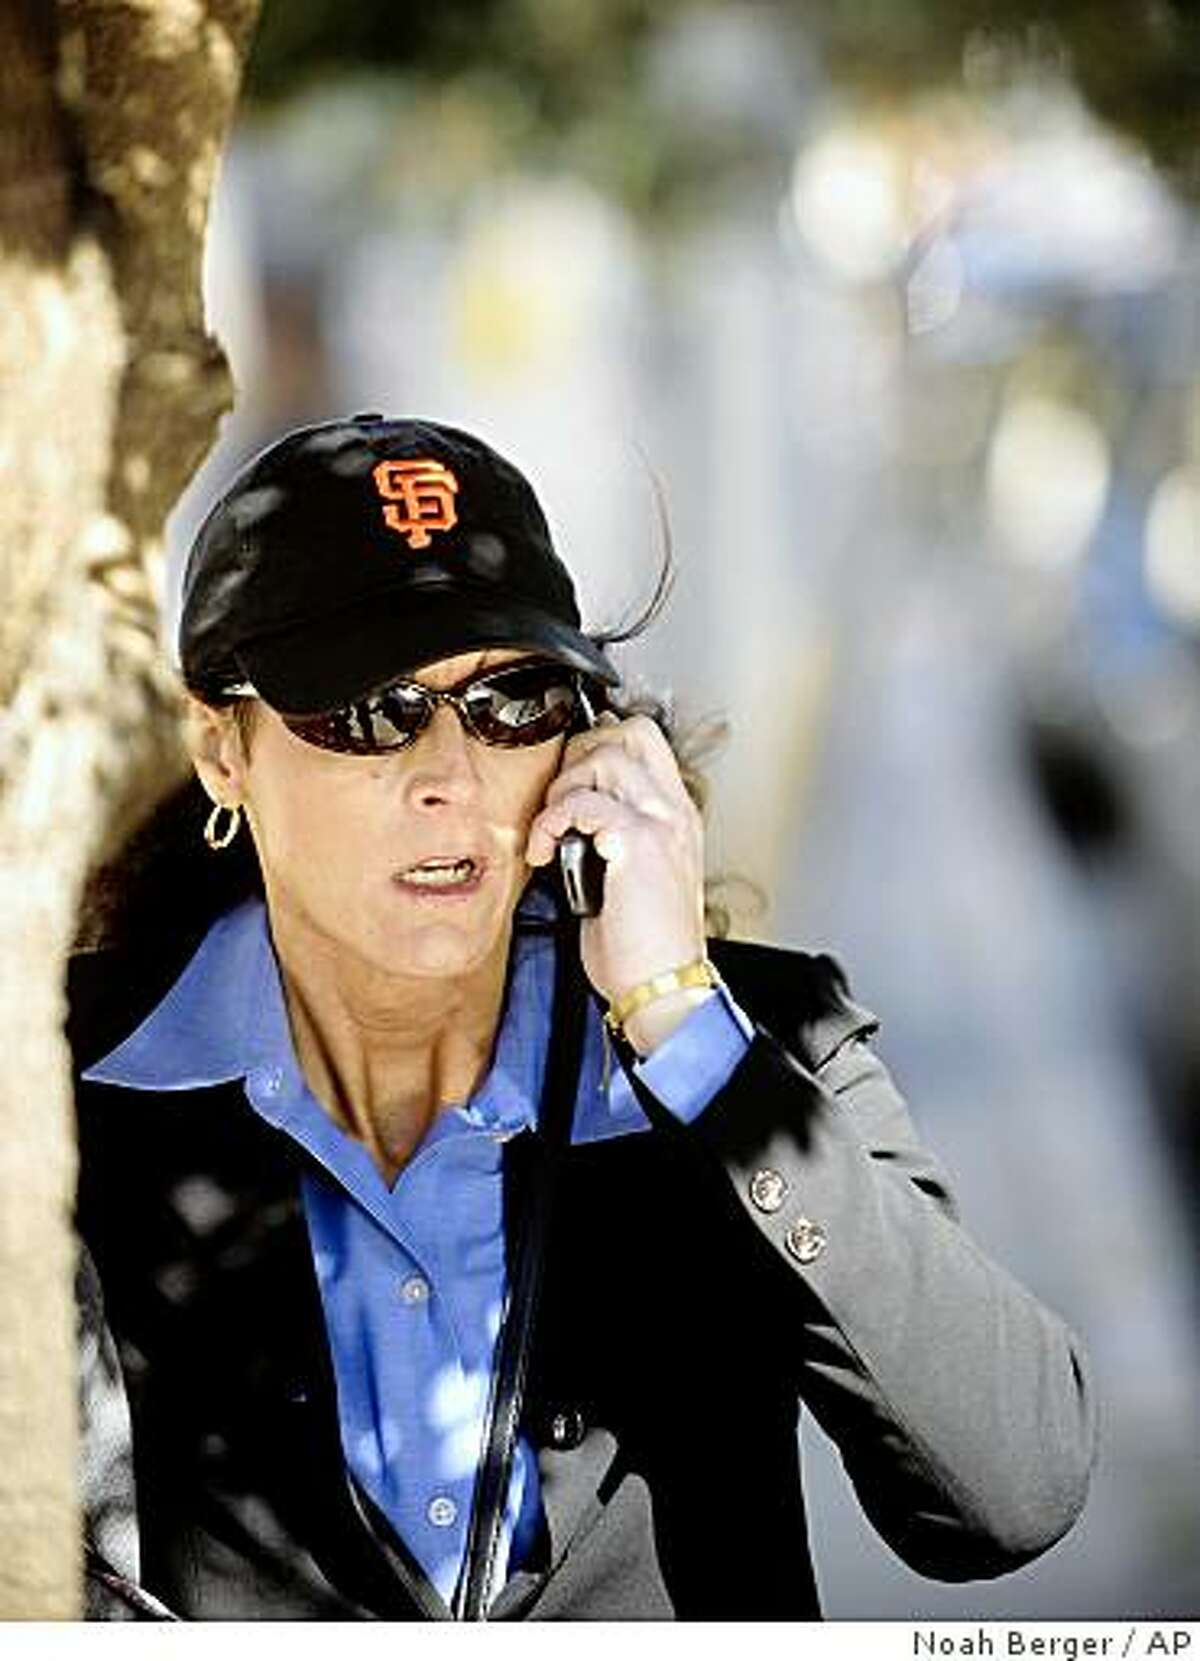 Former Olympic cyclist Tammy Thomas talks on her cell phone as she leaves the federal courthouse in San Francisco on Tuesday, March 25, 2008. Thomas is charged with perjury and obstruction of justice for allegedly lying to a federal grand jury investigating a steroid ring that spanned many sports.